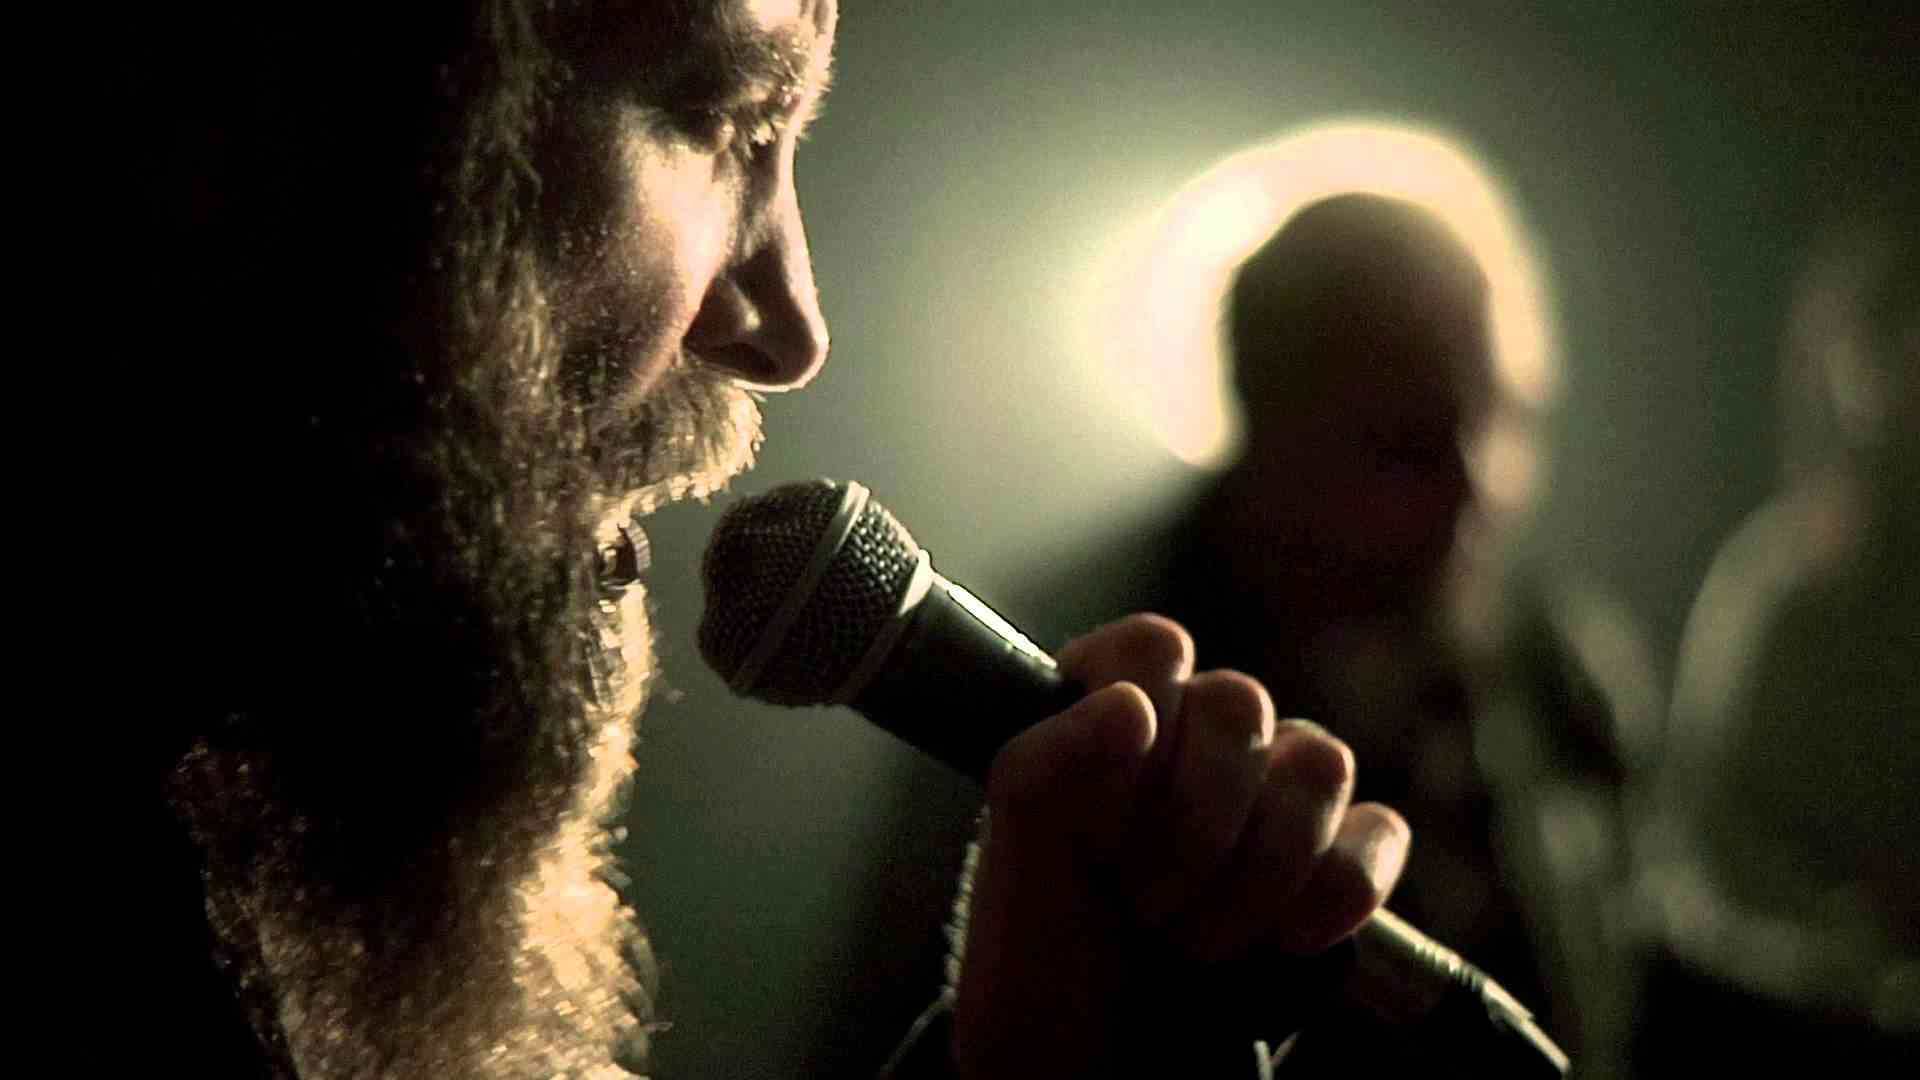 PARADISE LOST - Beneath Broken Earth (OFFICIAL VIDEO) - YouTube